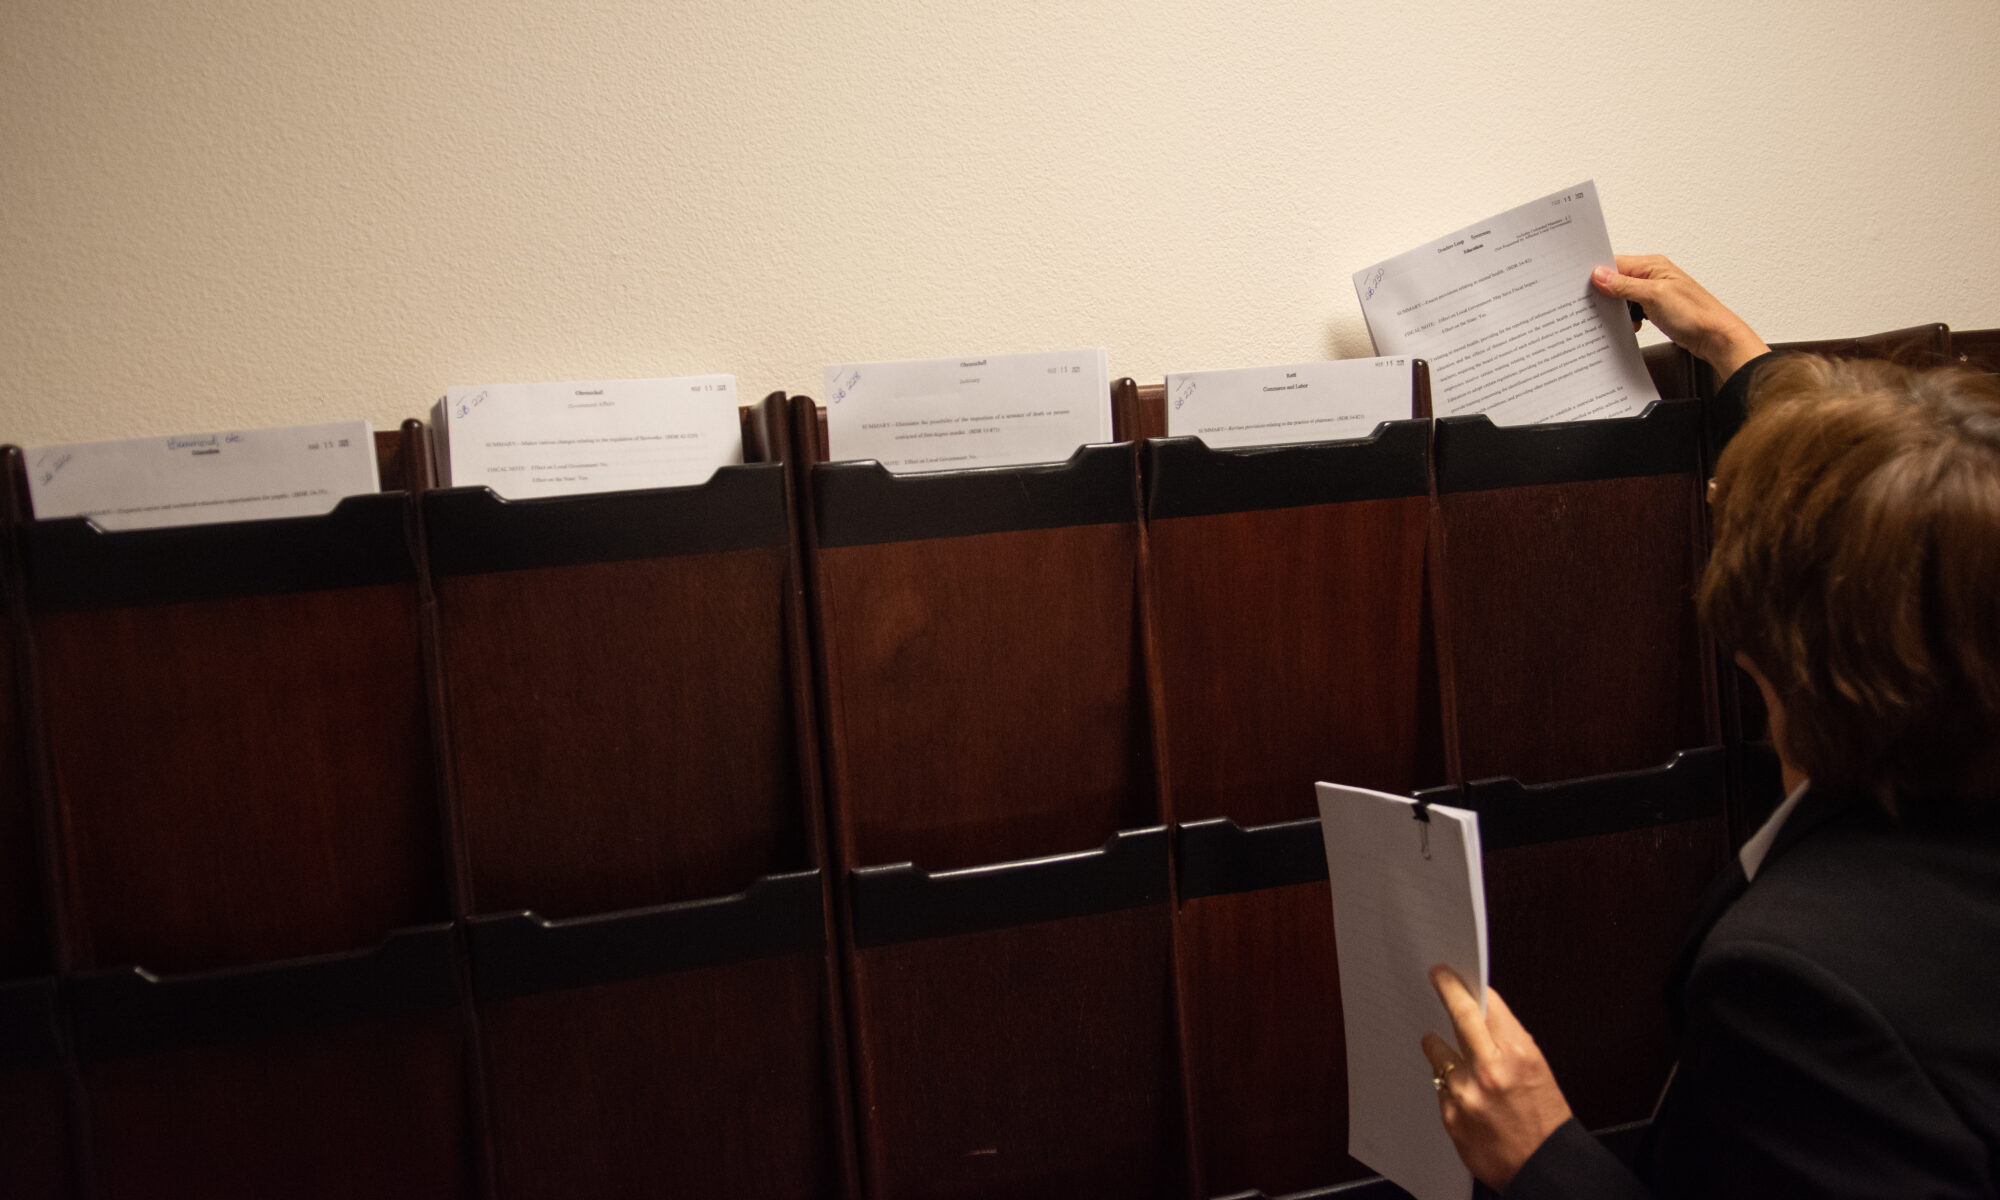 A man placing copies in cubbies